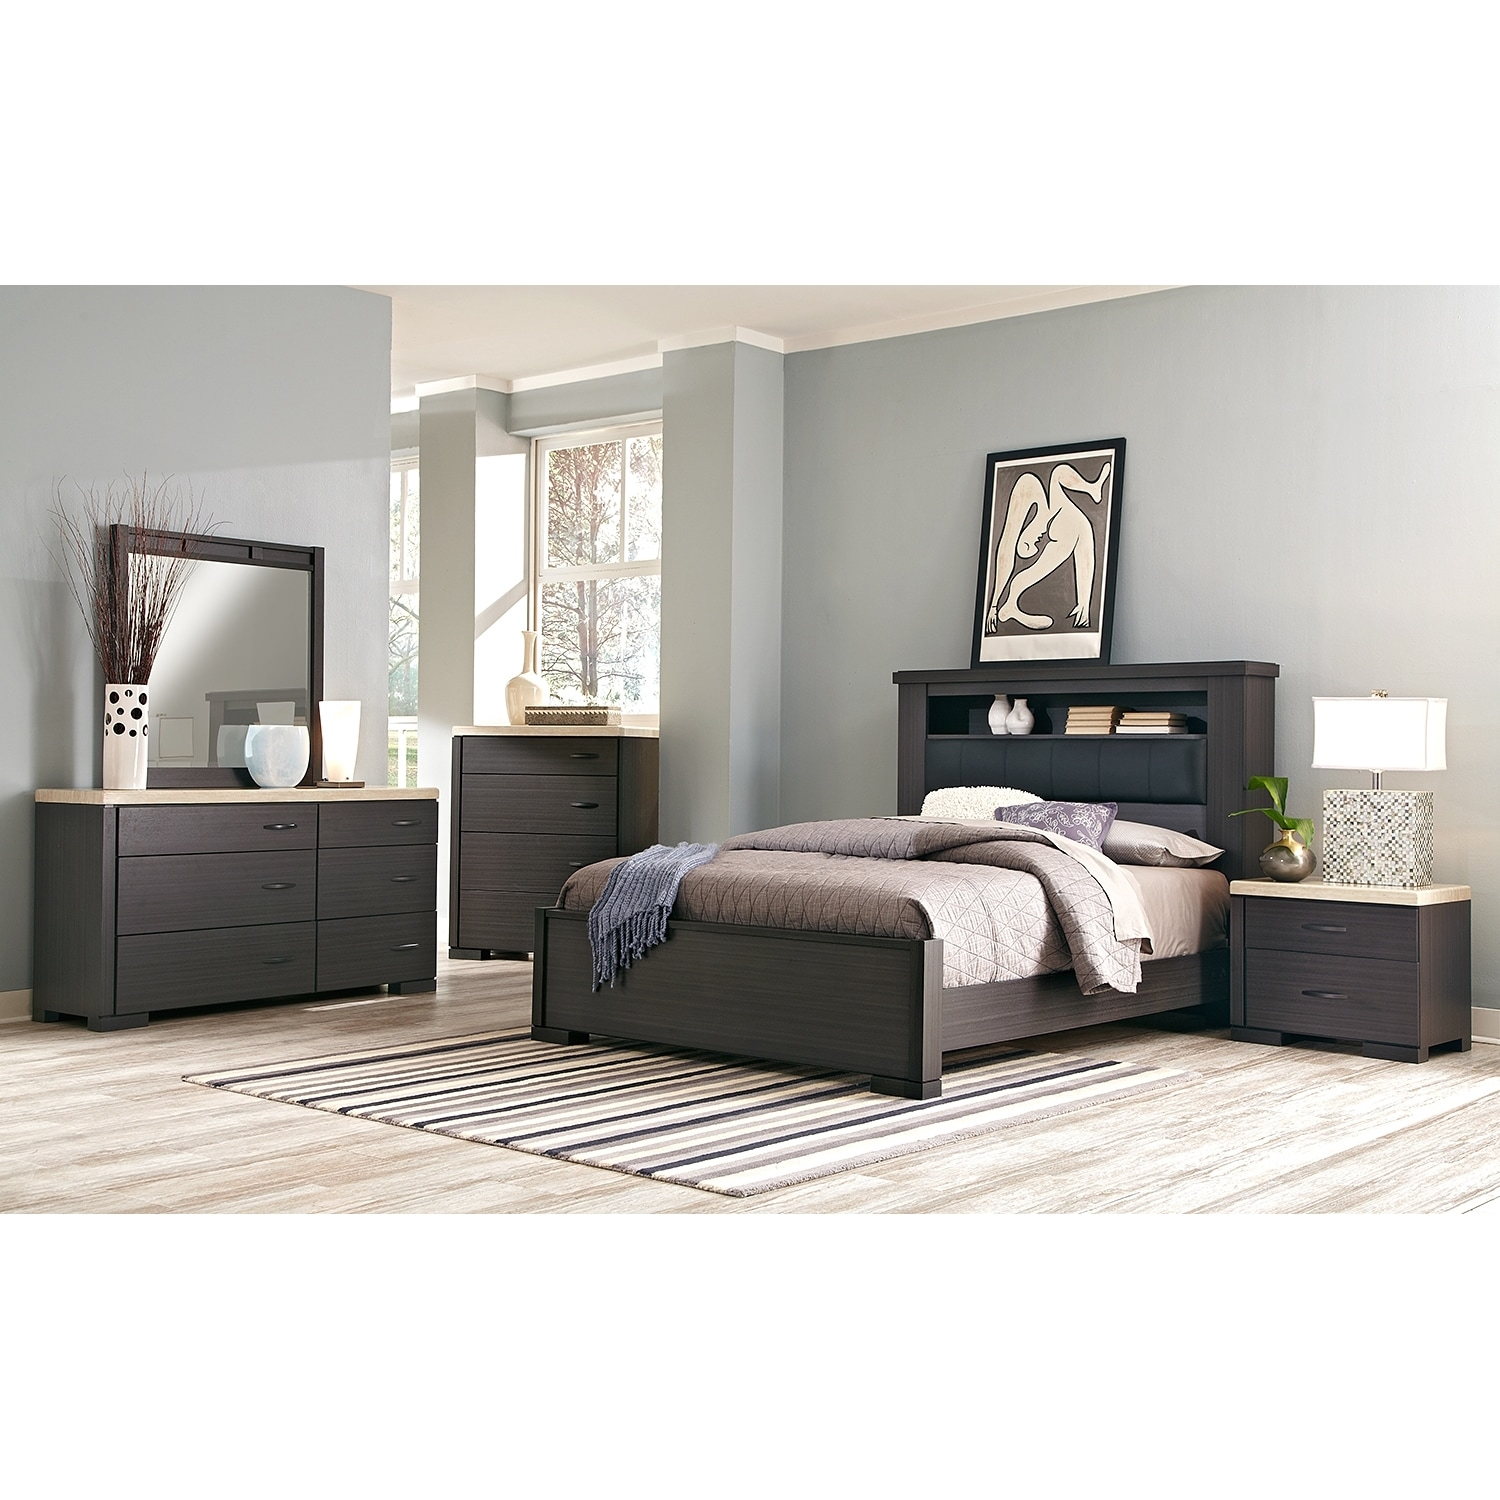 Bedroom Furniture - Camino 7-Piece Queen Bedroom Set - Charcoal and Ivory